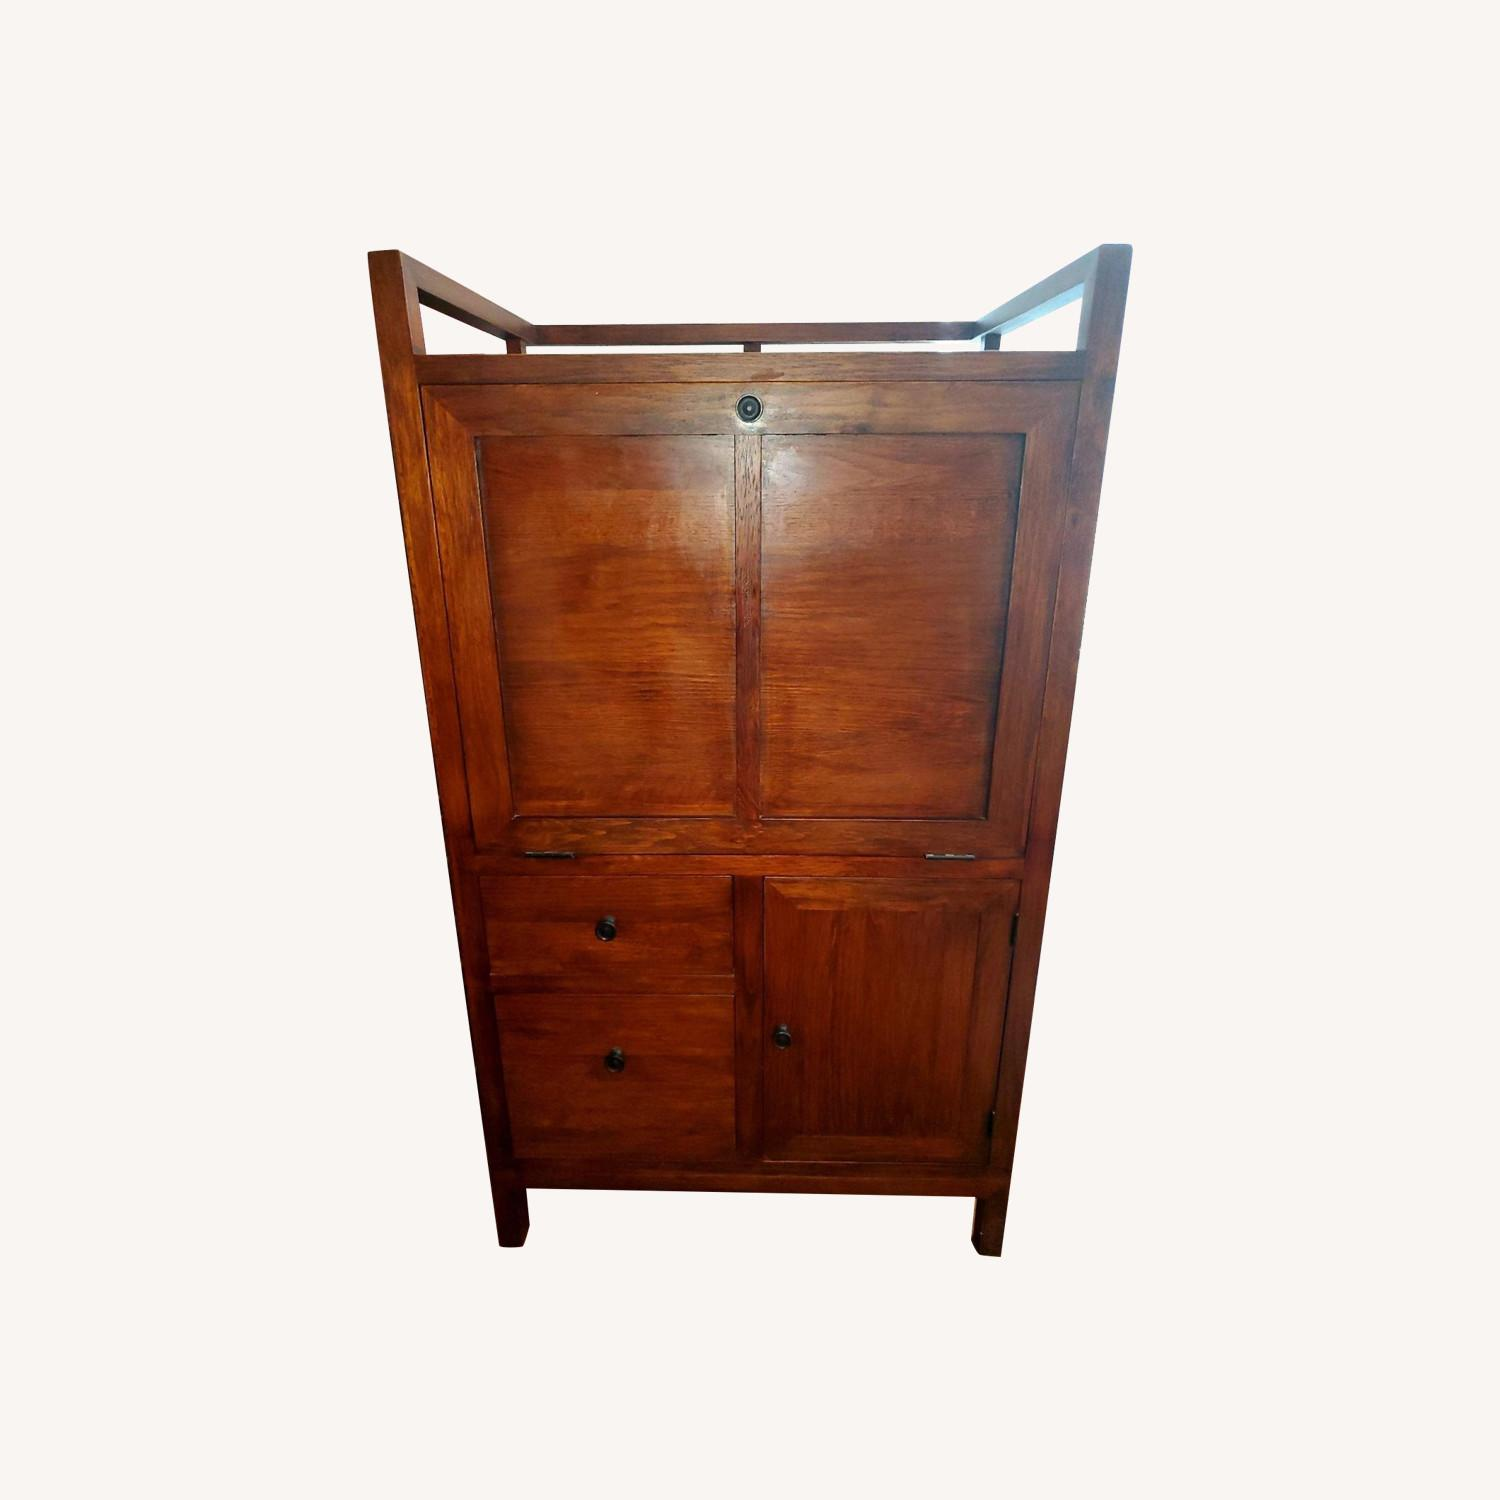 Crate and Barrel Desk Armoire - image-0